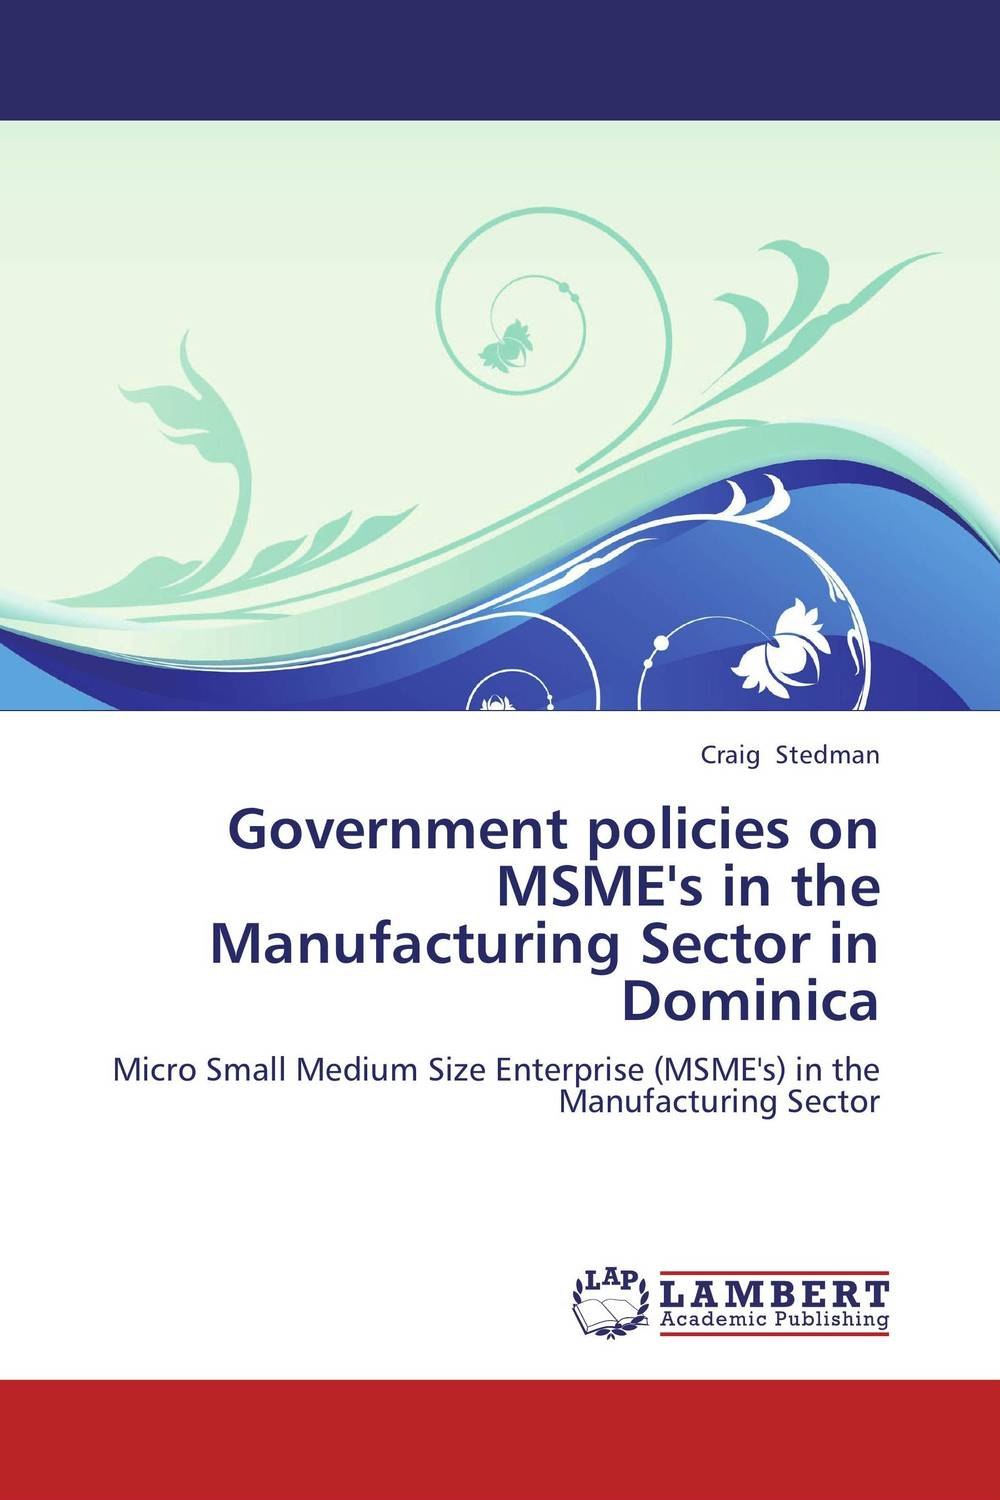 Government policies on MSME's in the Manufacturing Sector in Dominica psychiatric disorders in postpartum period